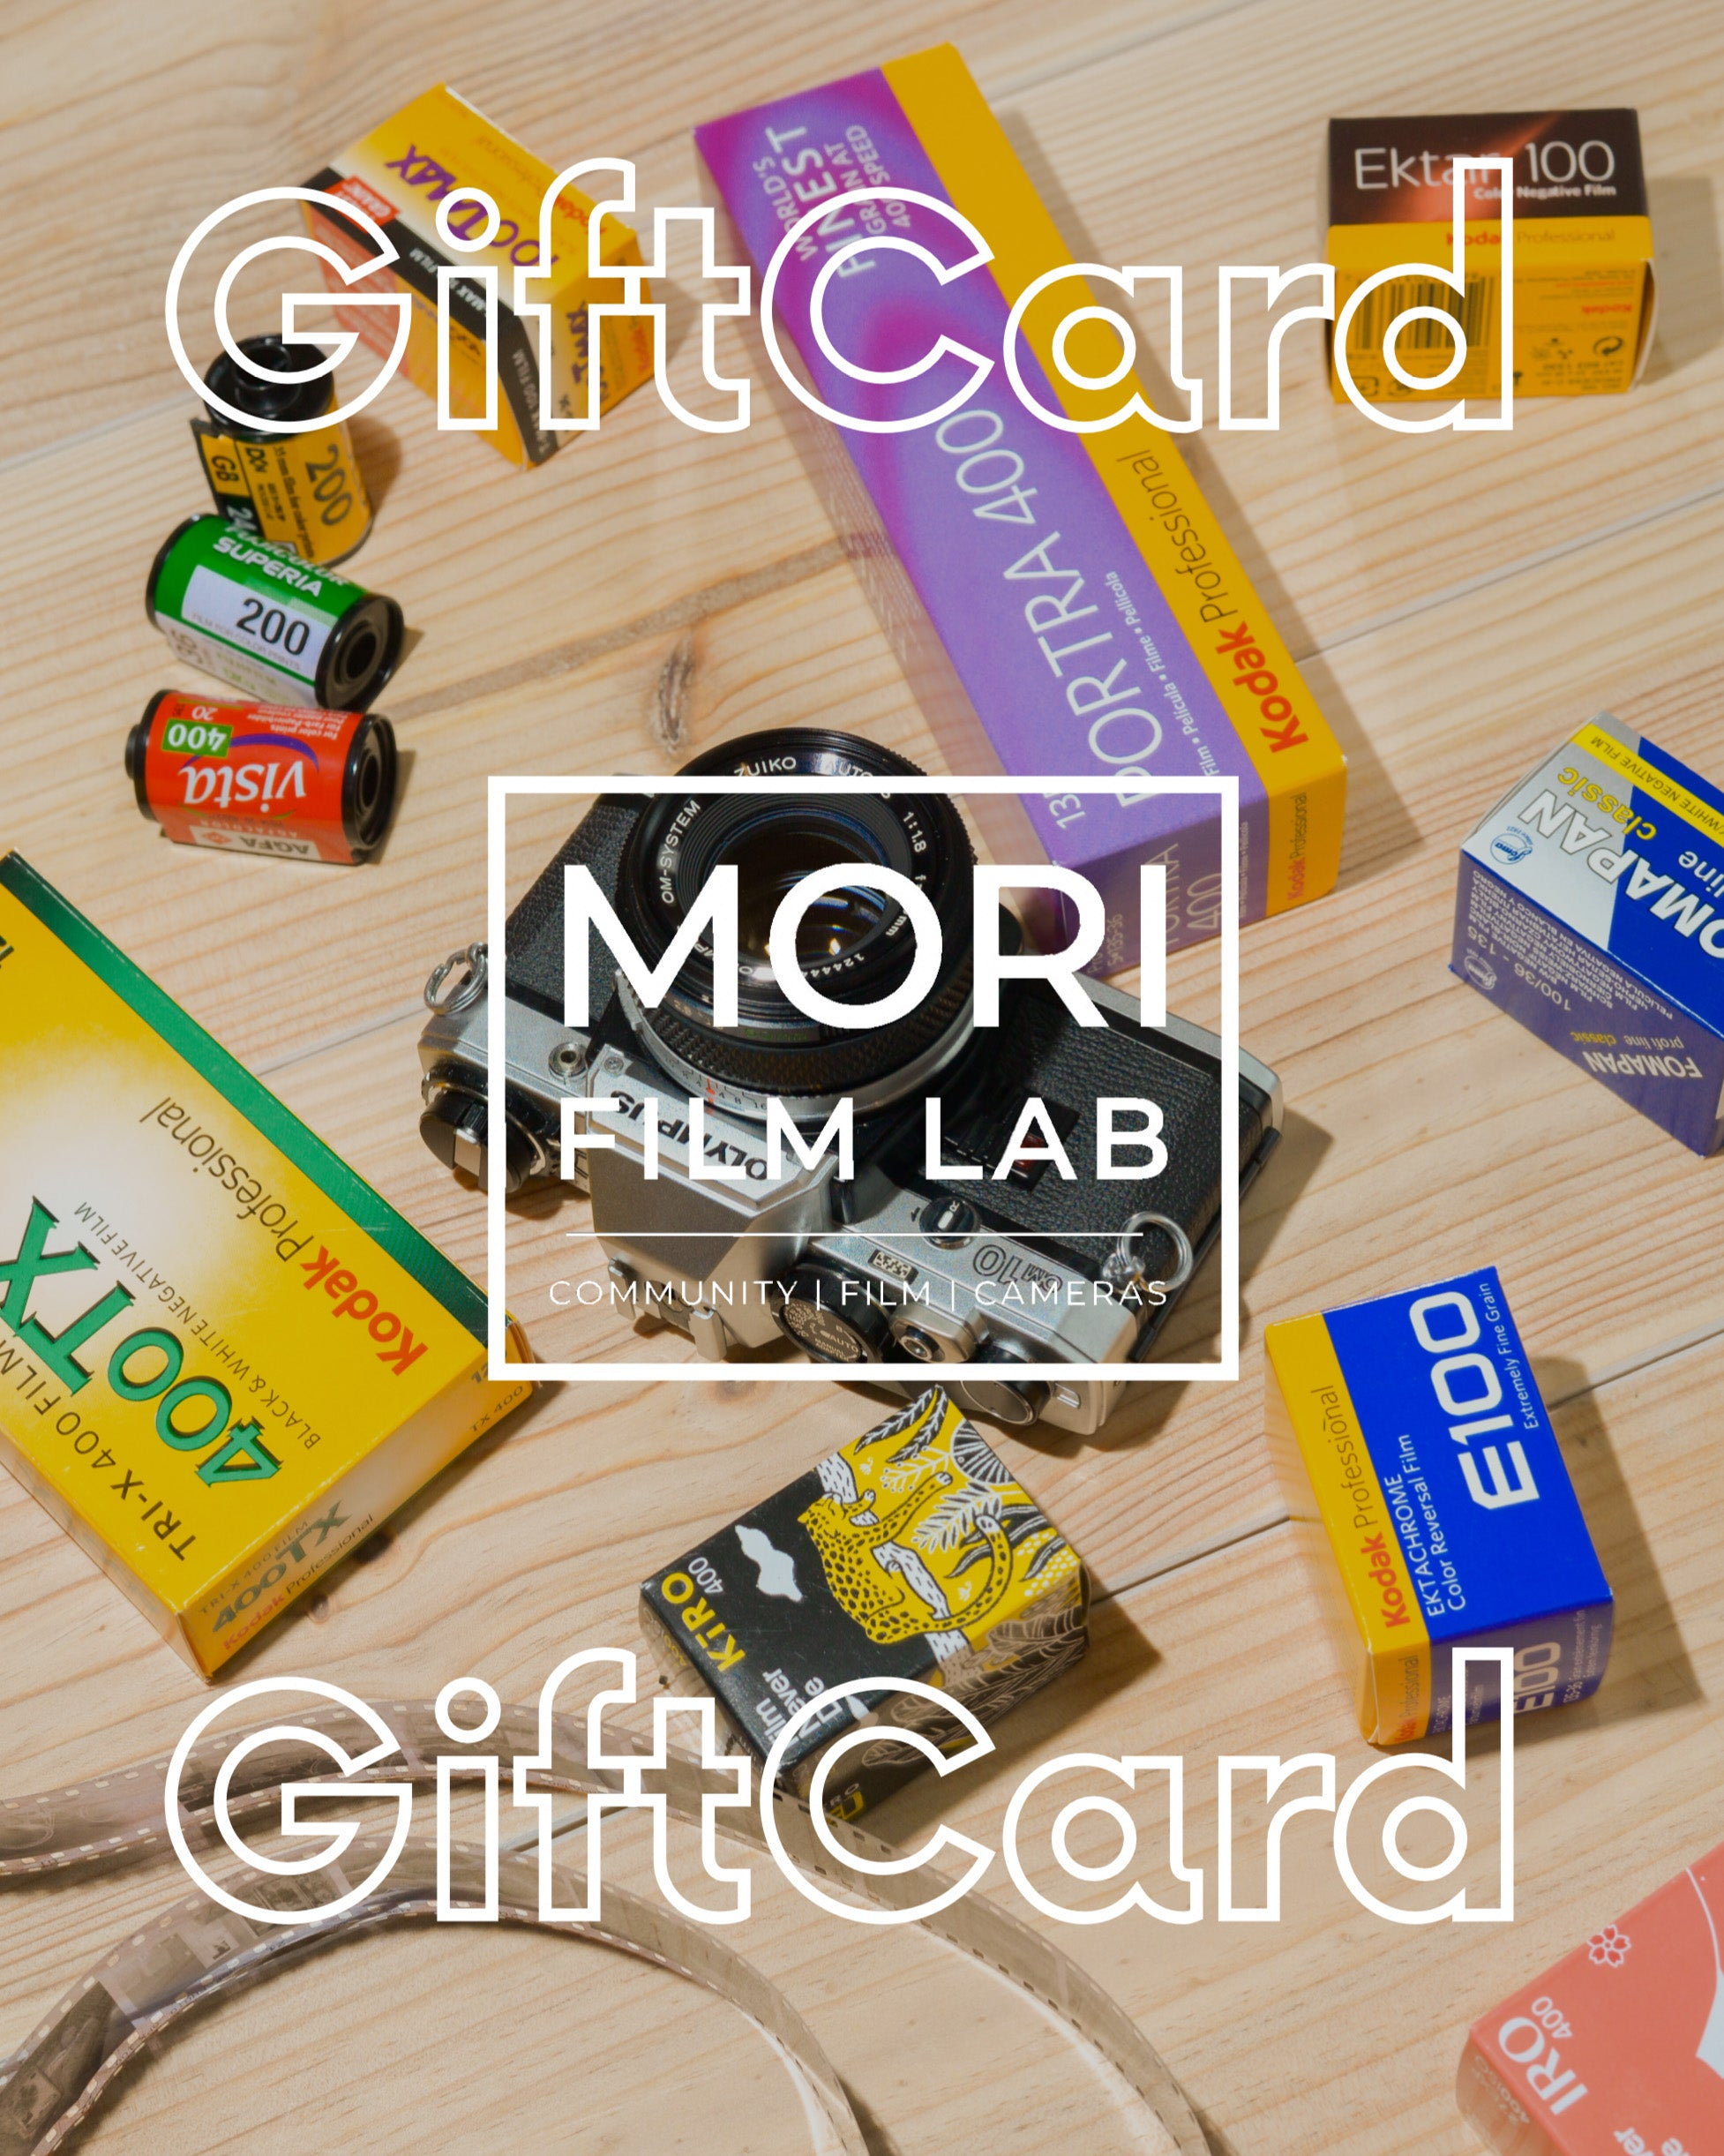 Mori Film Lab Gift Card